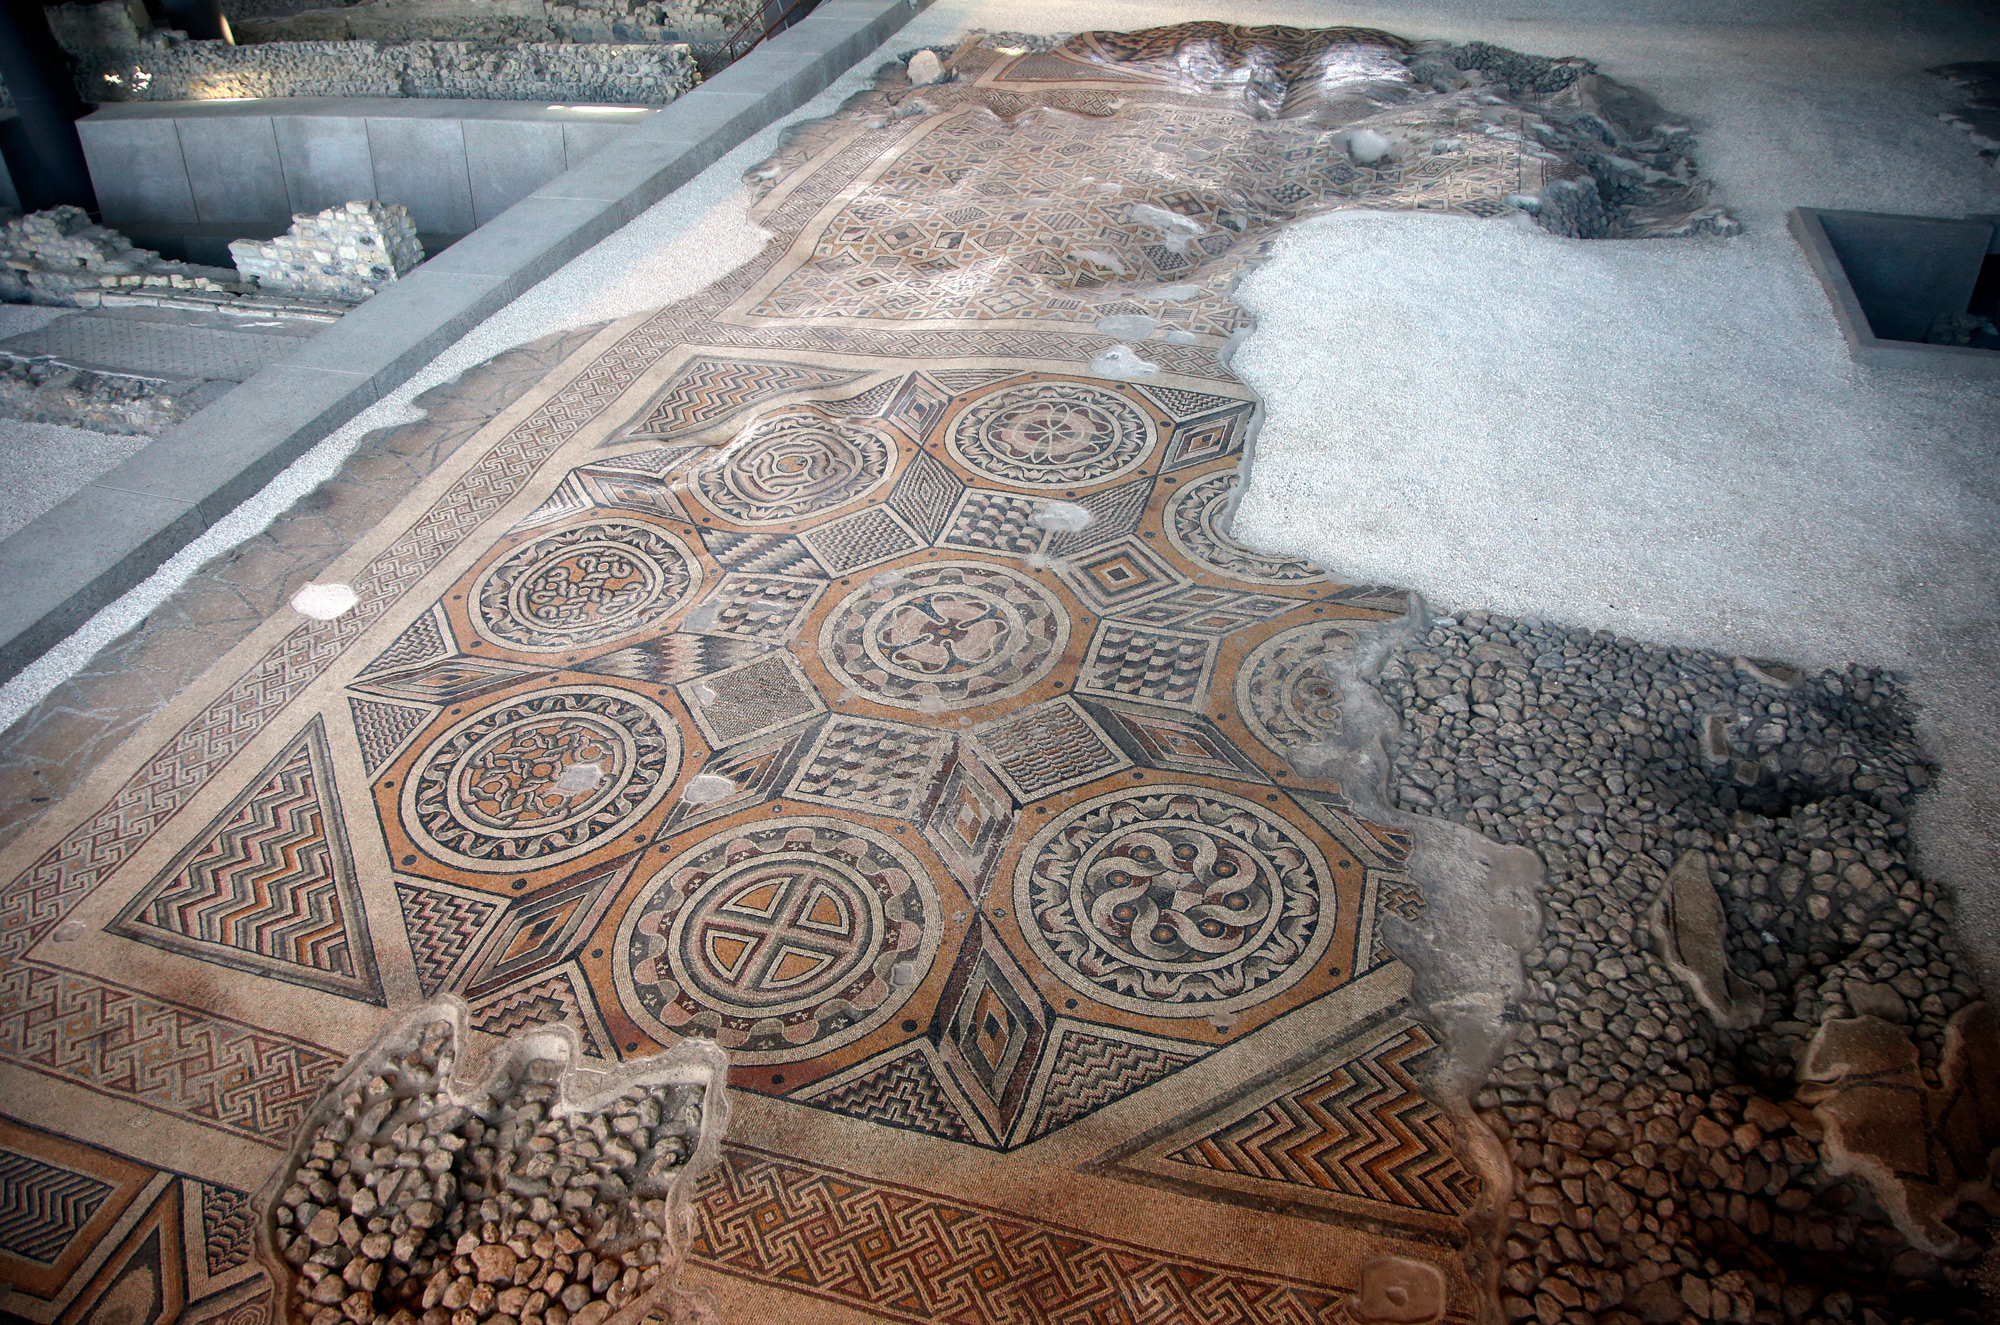 The World's Largest Intact Mosaic Opens to the Public in Antakya, Turkey | Colossal